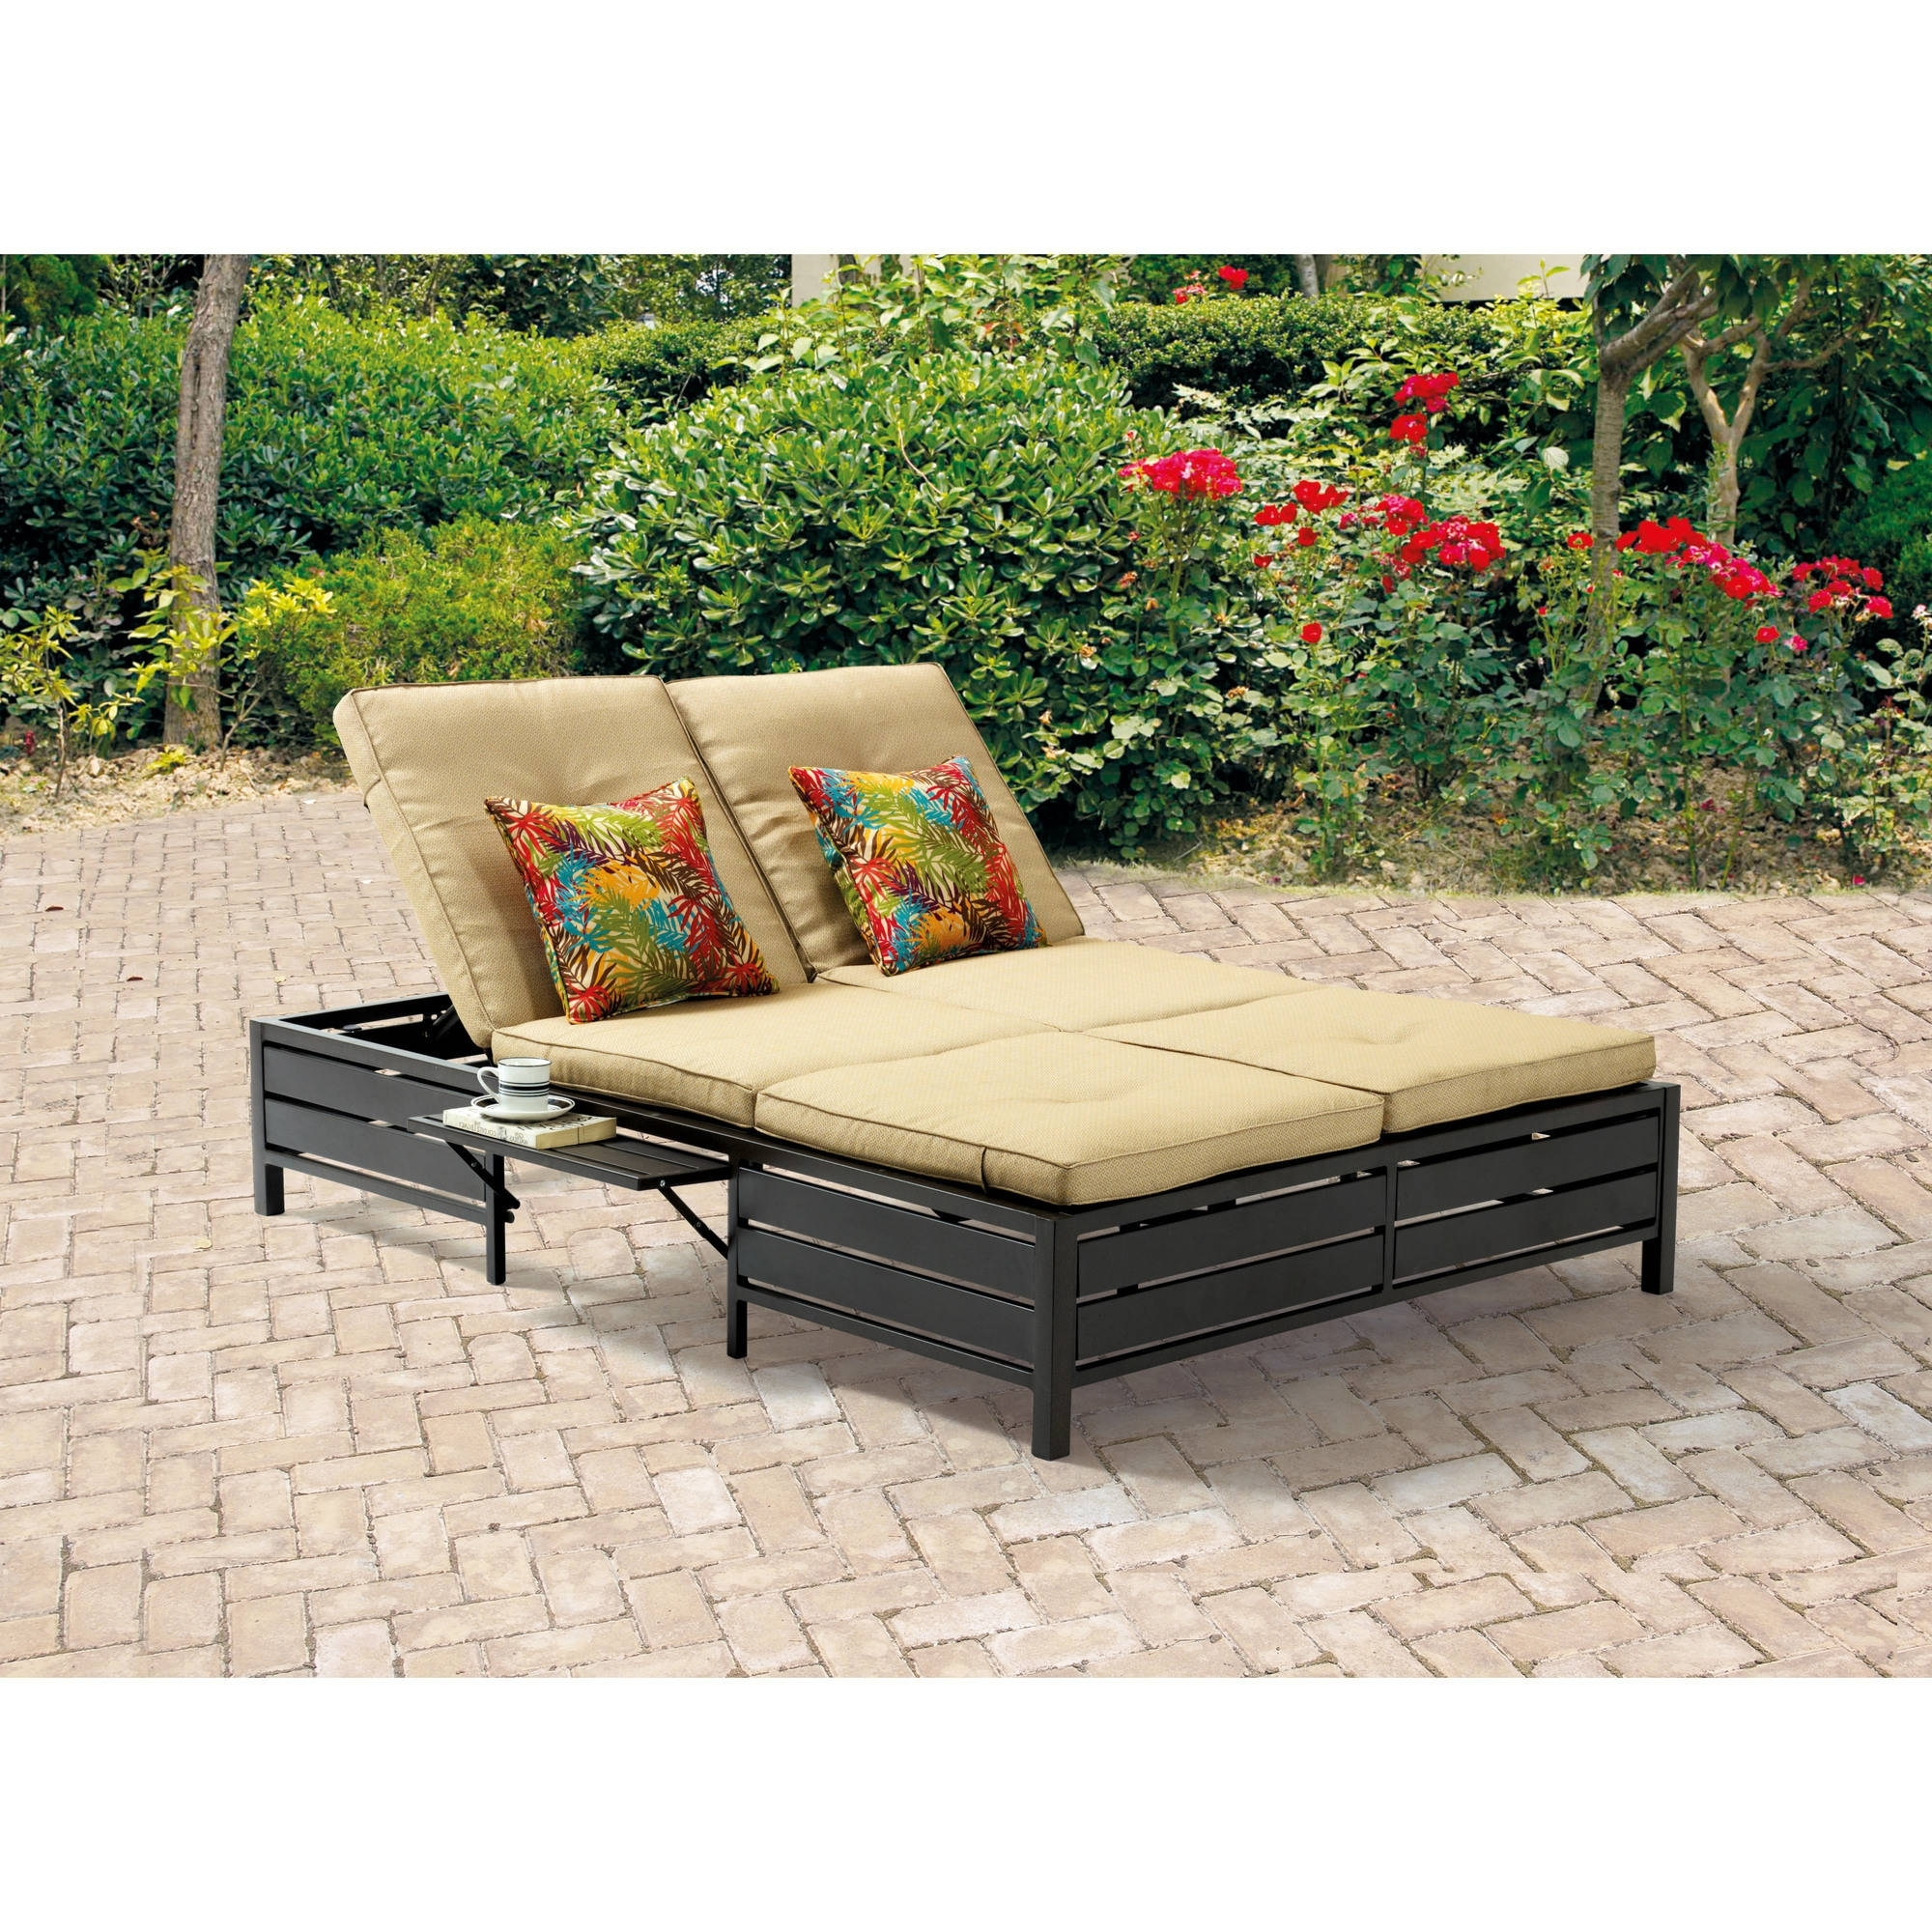 Walmart Outdoor Chaise Lounges Intended For Most Recent Outdoor Chaise Lounges – Walmart (View 12 of 15)